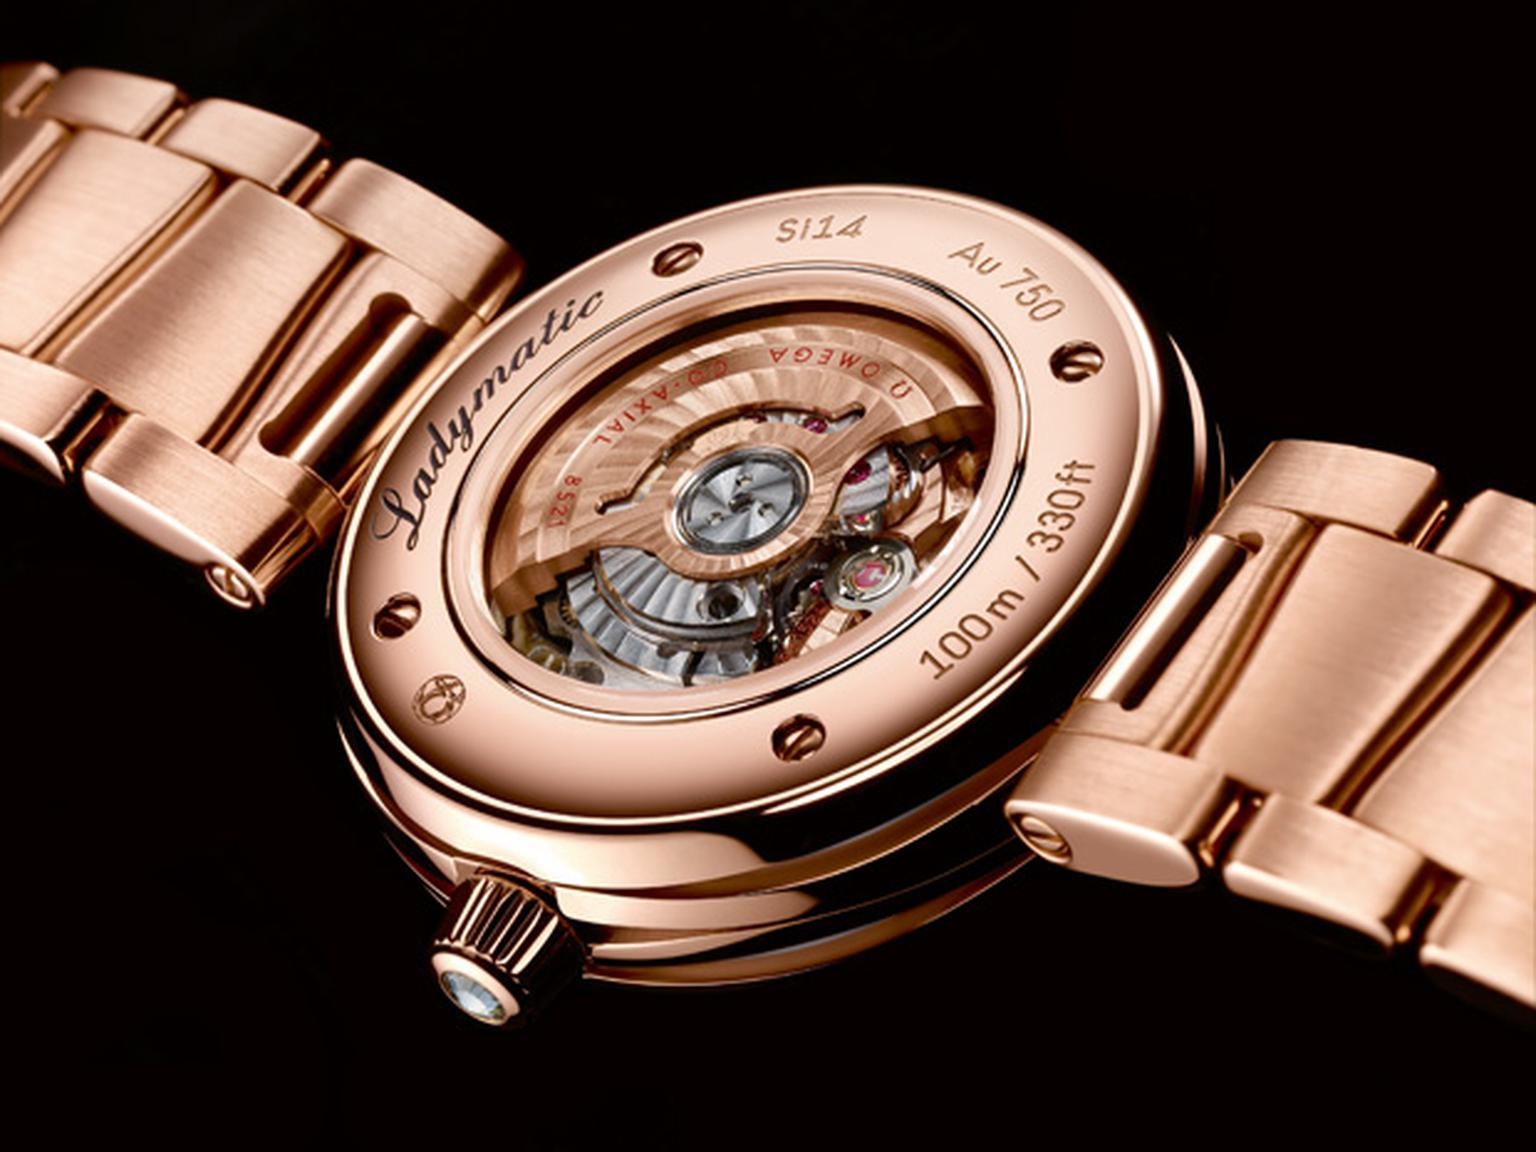 Ladymatic caseback showing the mechanical automatic movement